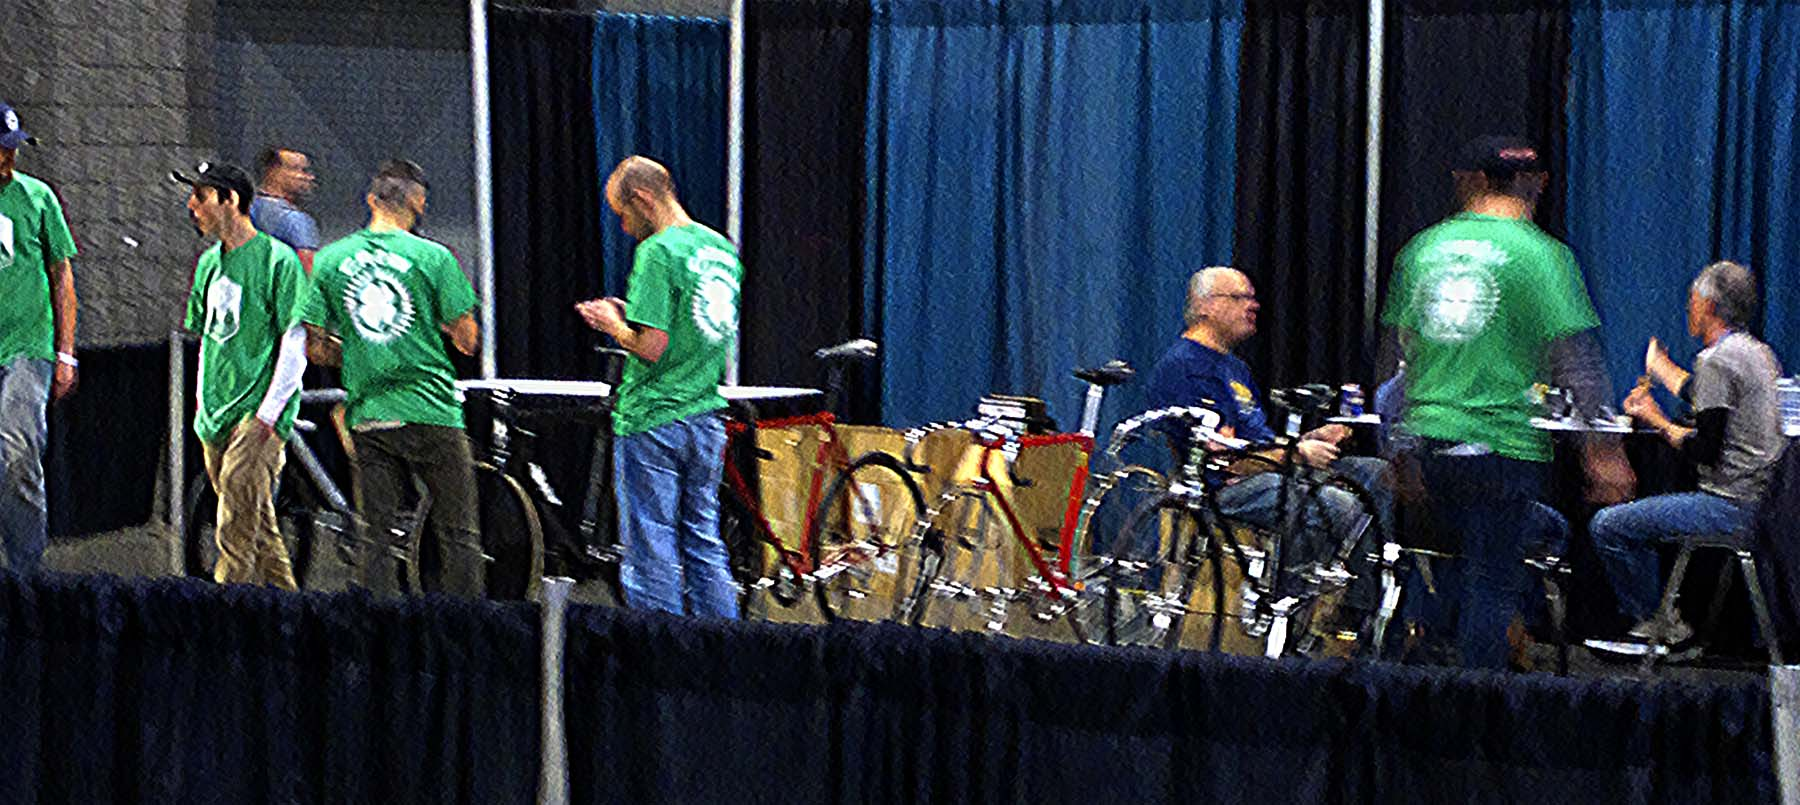 Iride bicycles inspire the judges of the best fixed gear track bike